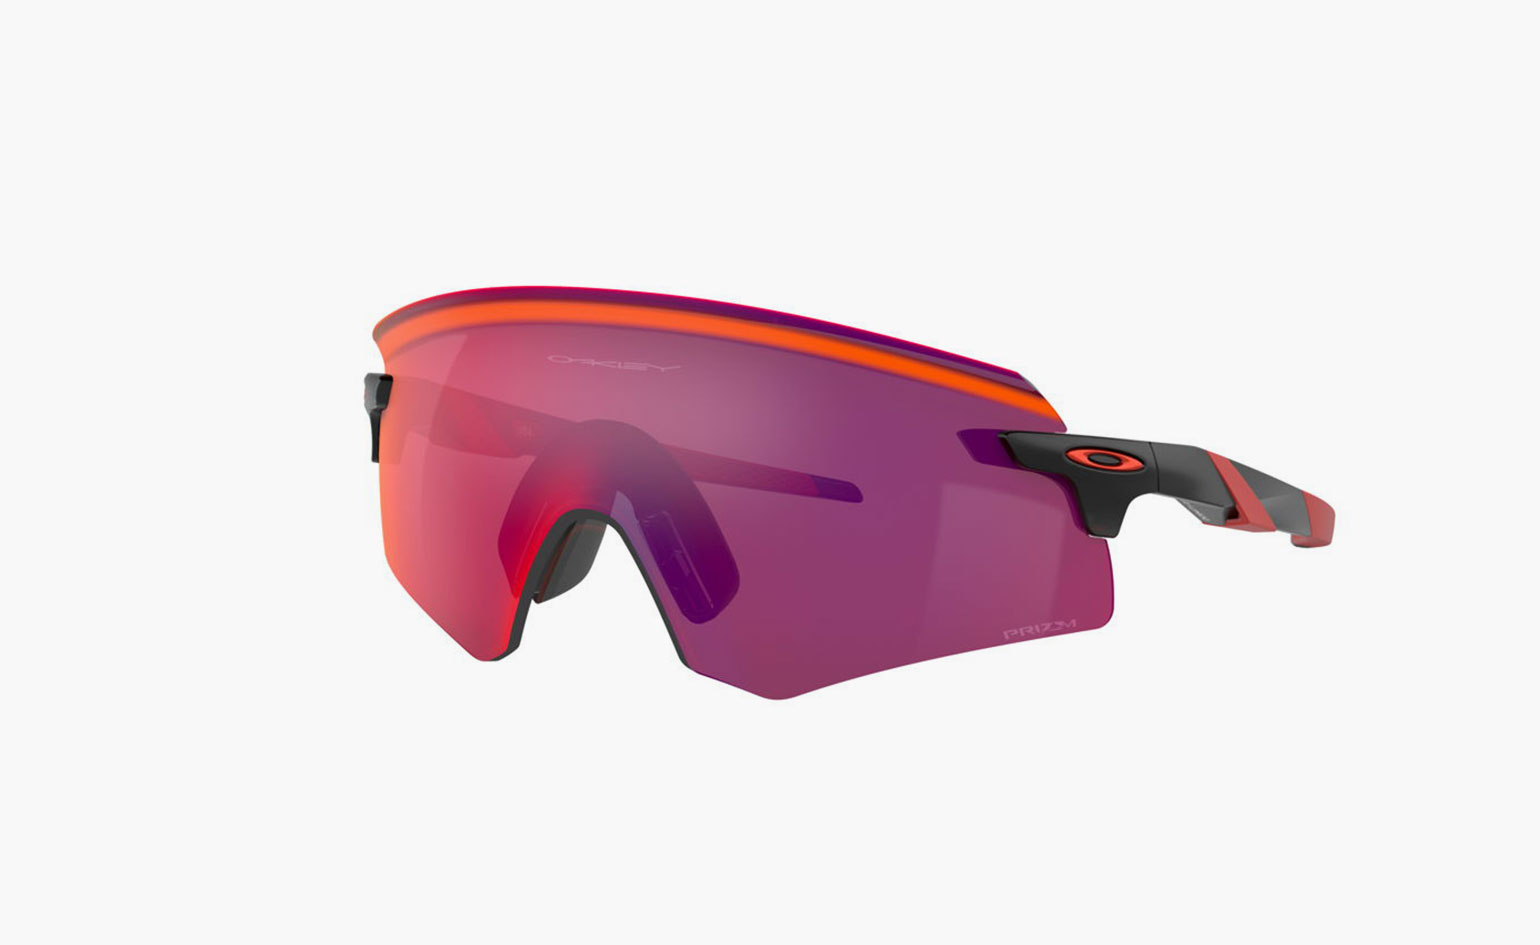 Surf style inspired reflective wraparound sunglasses by Oakley